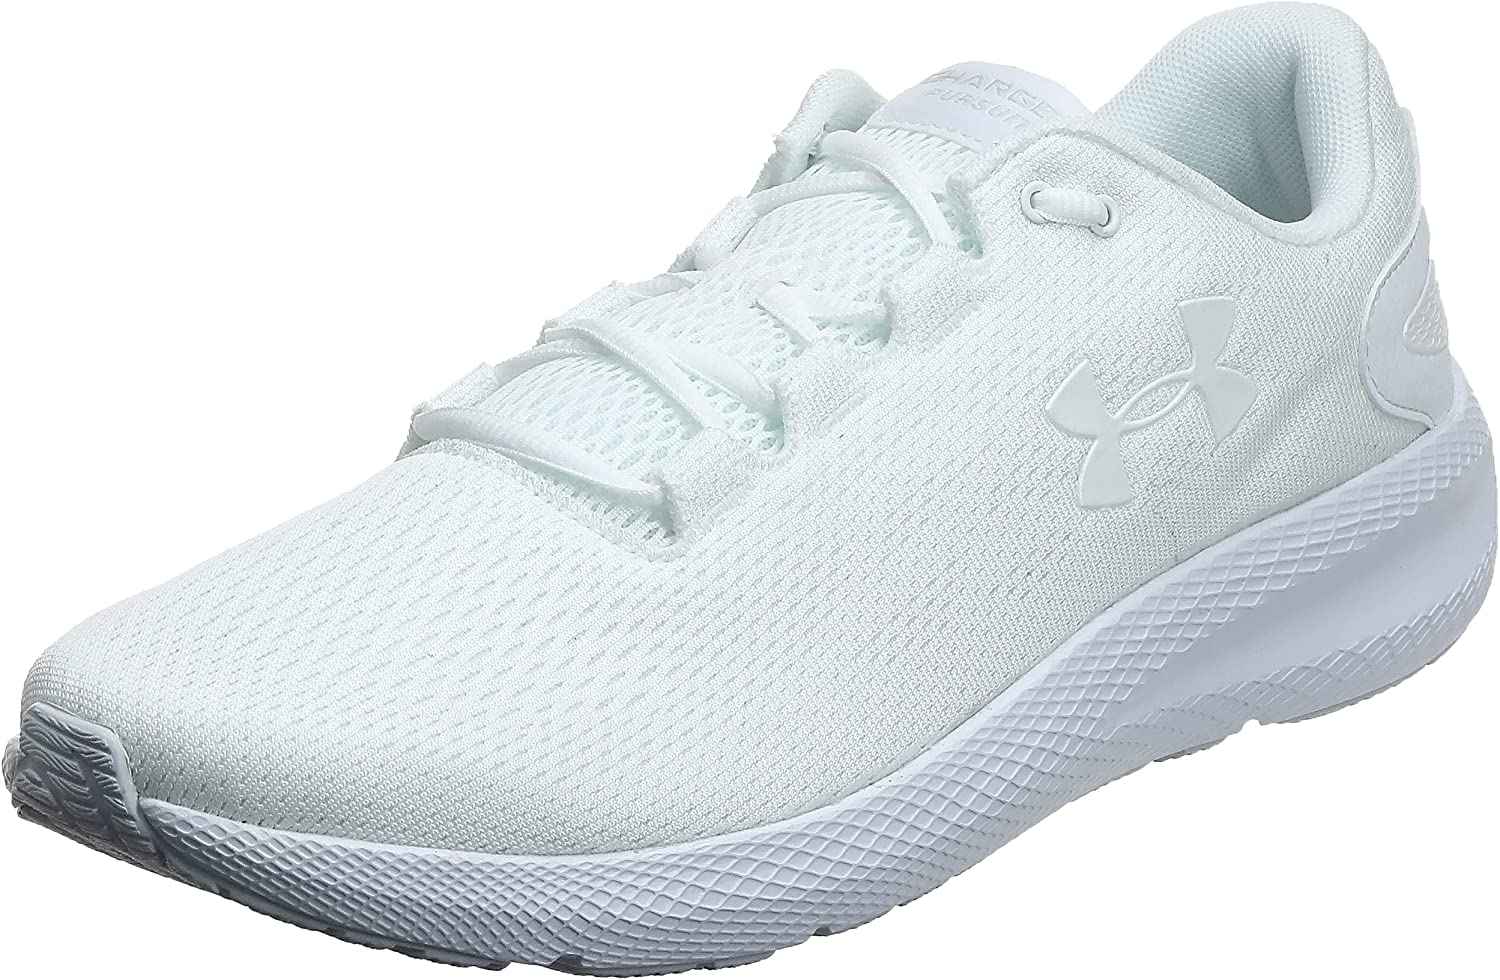 Under Armour Men's Charged Pursuit 2 Running shopping Shoe free 101 White W